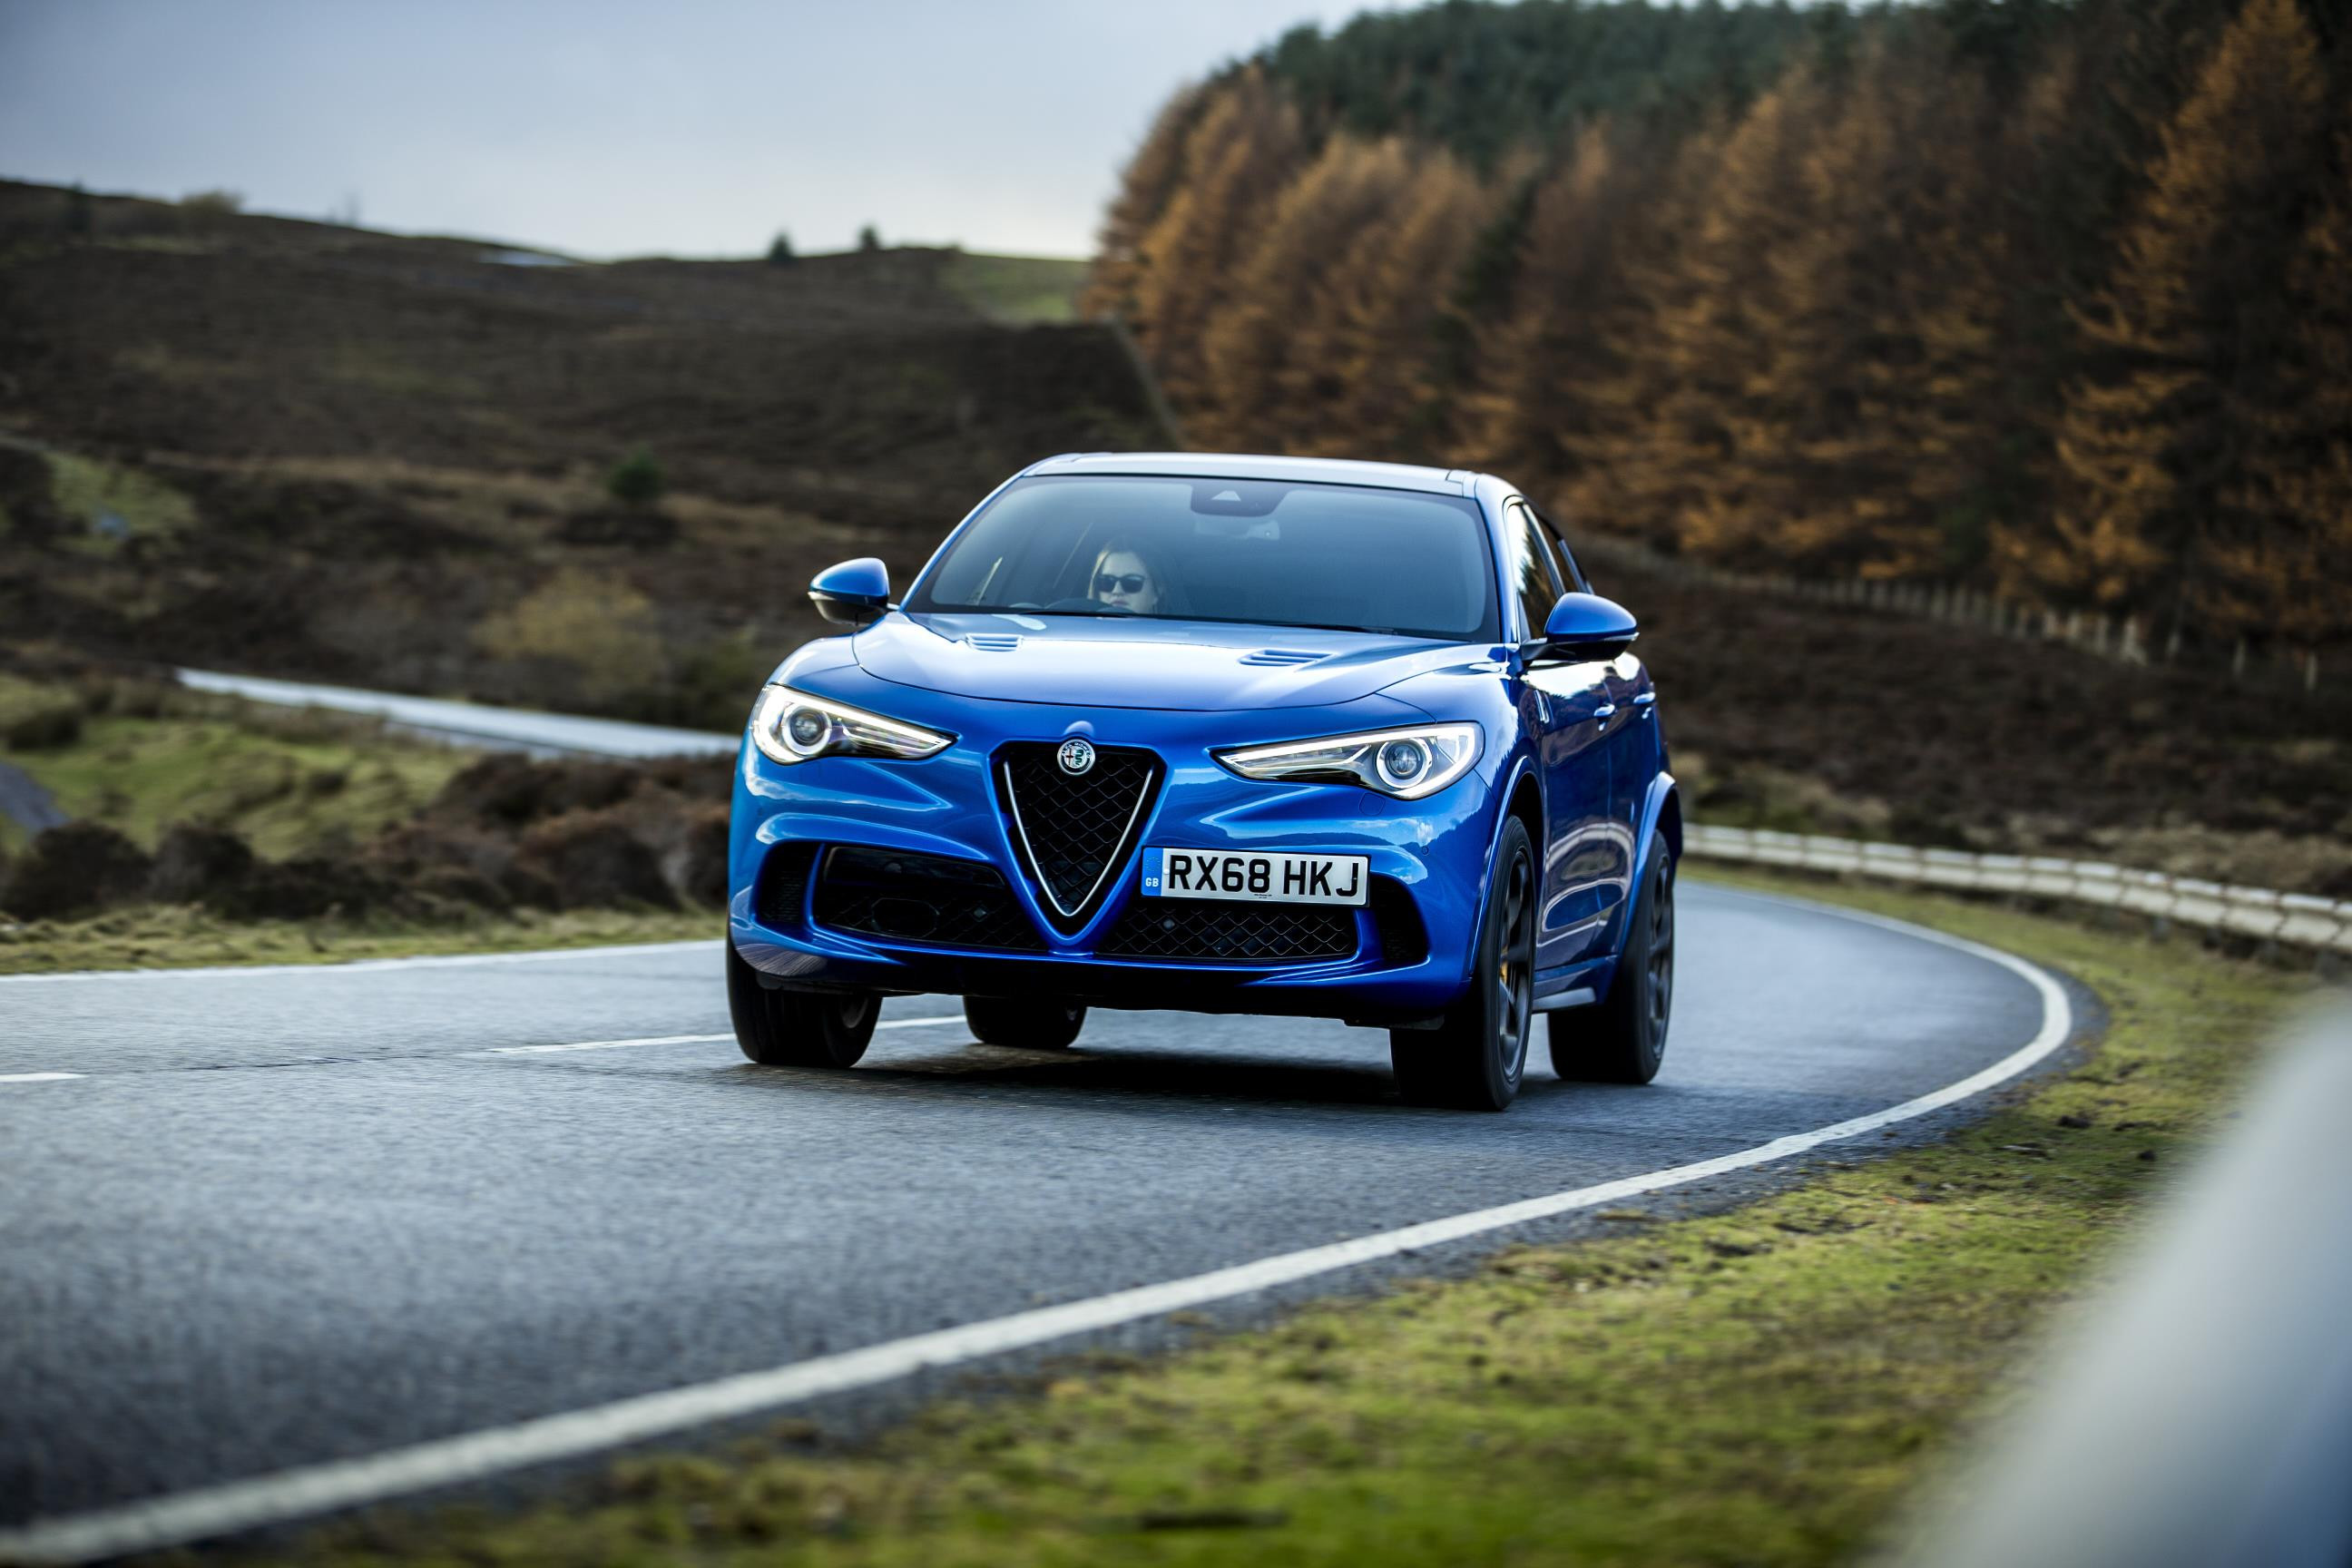 Bright blue metallic Alfa Romeo Stelvio Quadrifoglio driving towards you